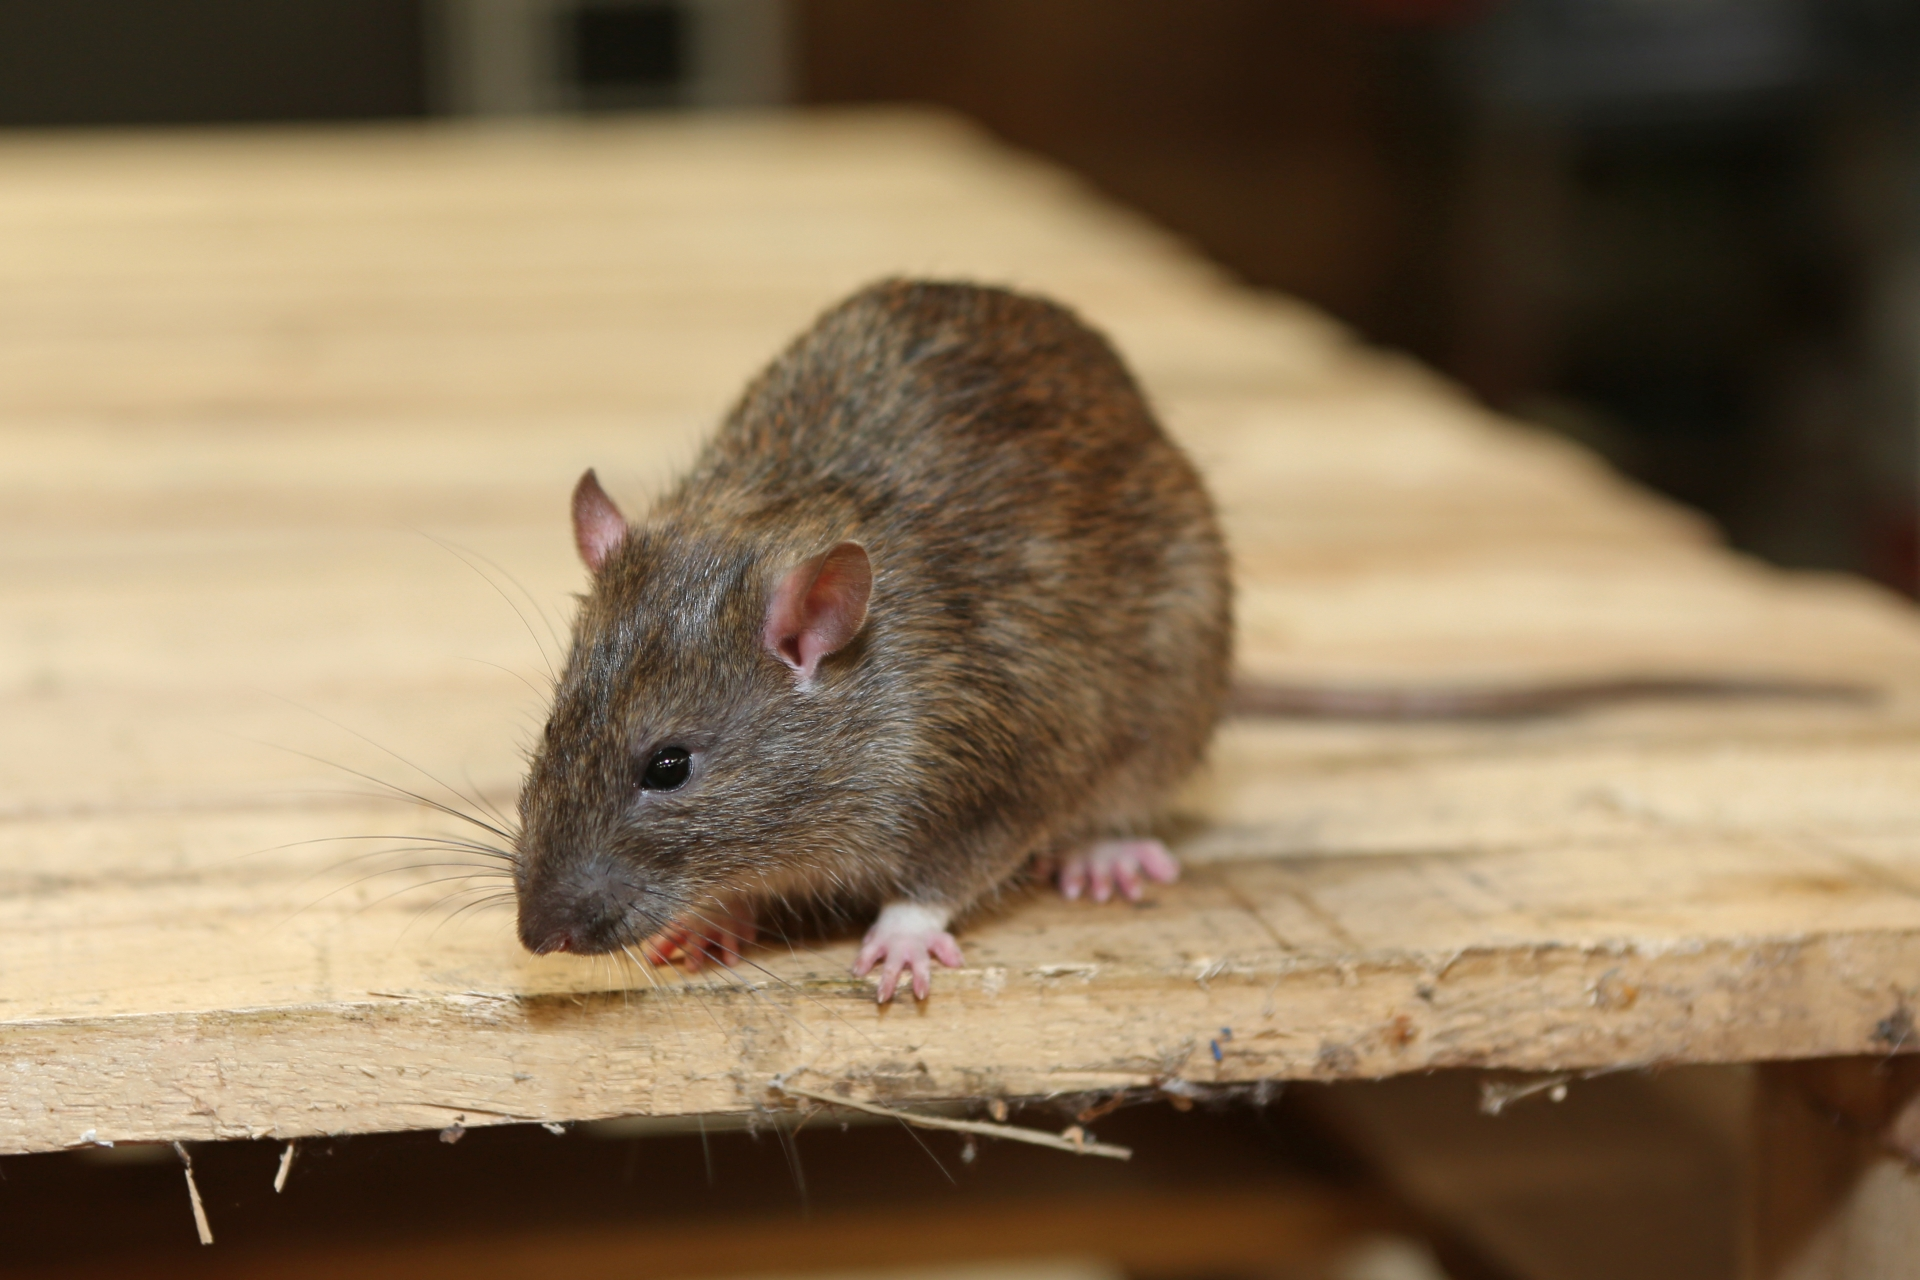 Rat Infestation, Pest Control in Canbury, Coombe, KT2. Call Now 020 8166 9746